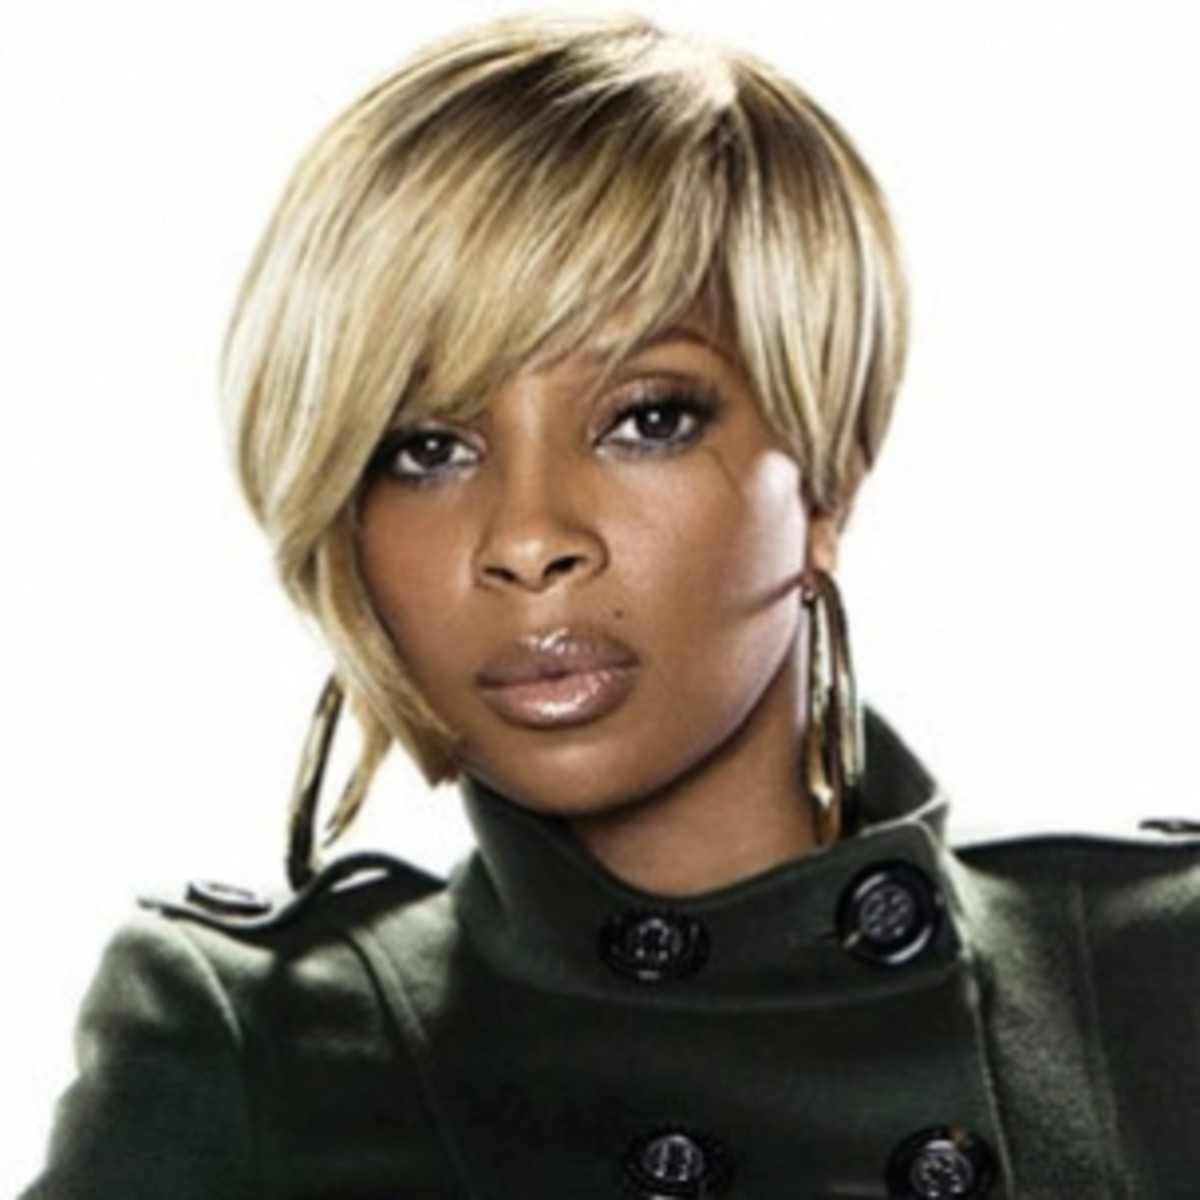 Mary J. Blige blonde wig for a heart-shaped face.